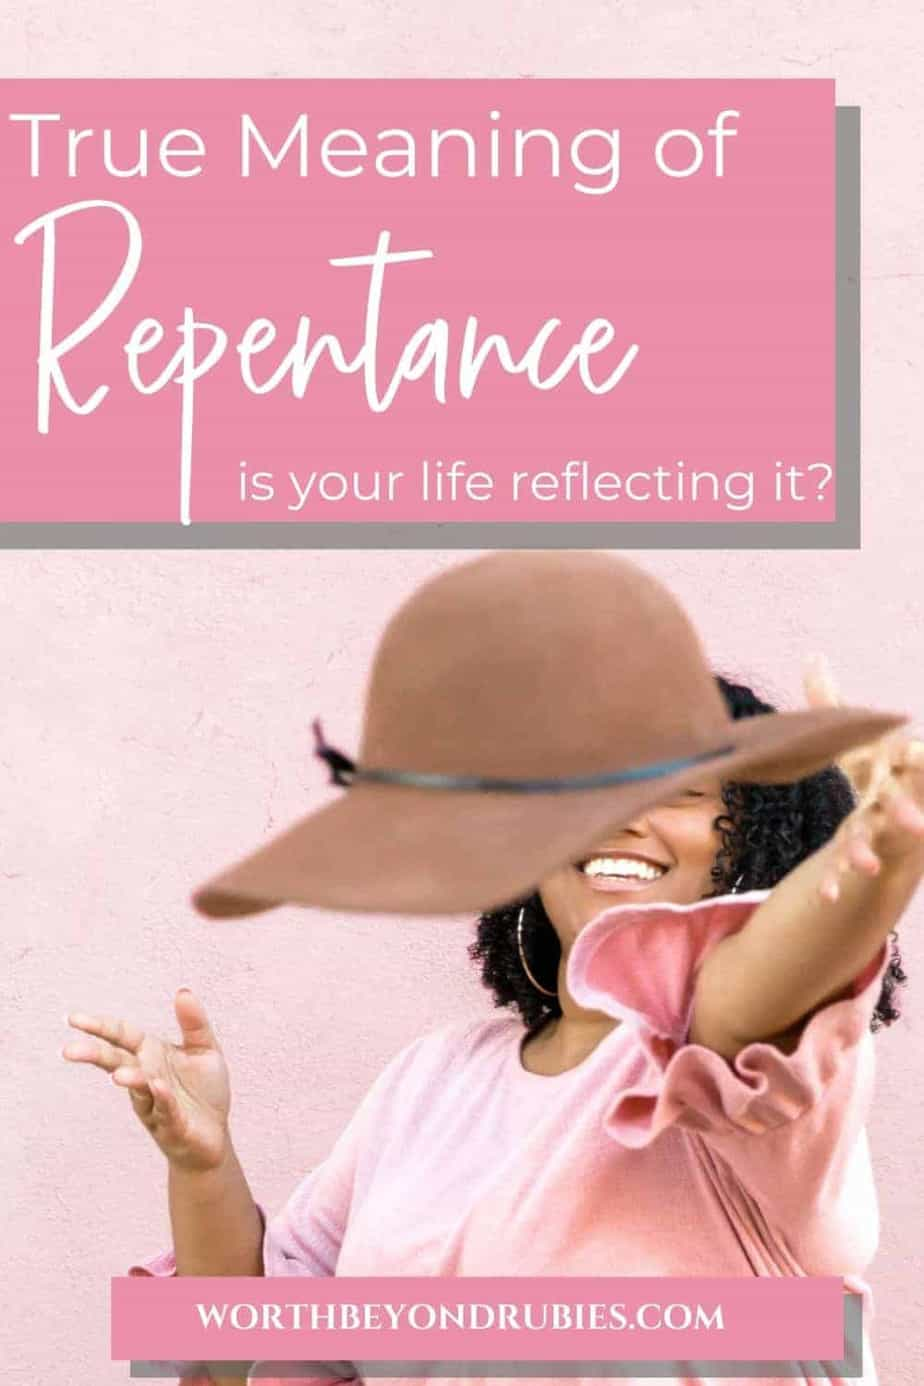 An image of a black woman dressed in pink against a pink background. She is smiling as she tosses a brown rimmed hat toward the camera. There is a text overlay that says True Meaning of Repentance - Is Your Life Reflecting It?